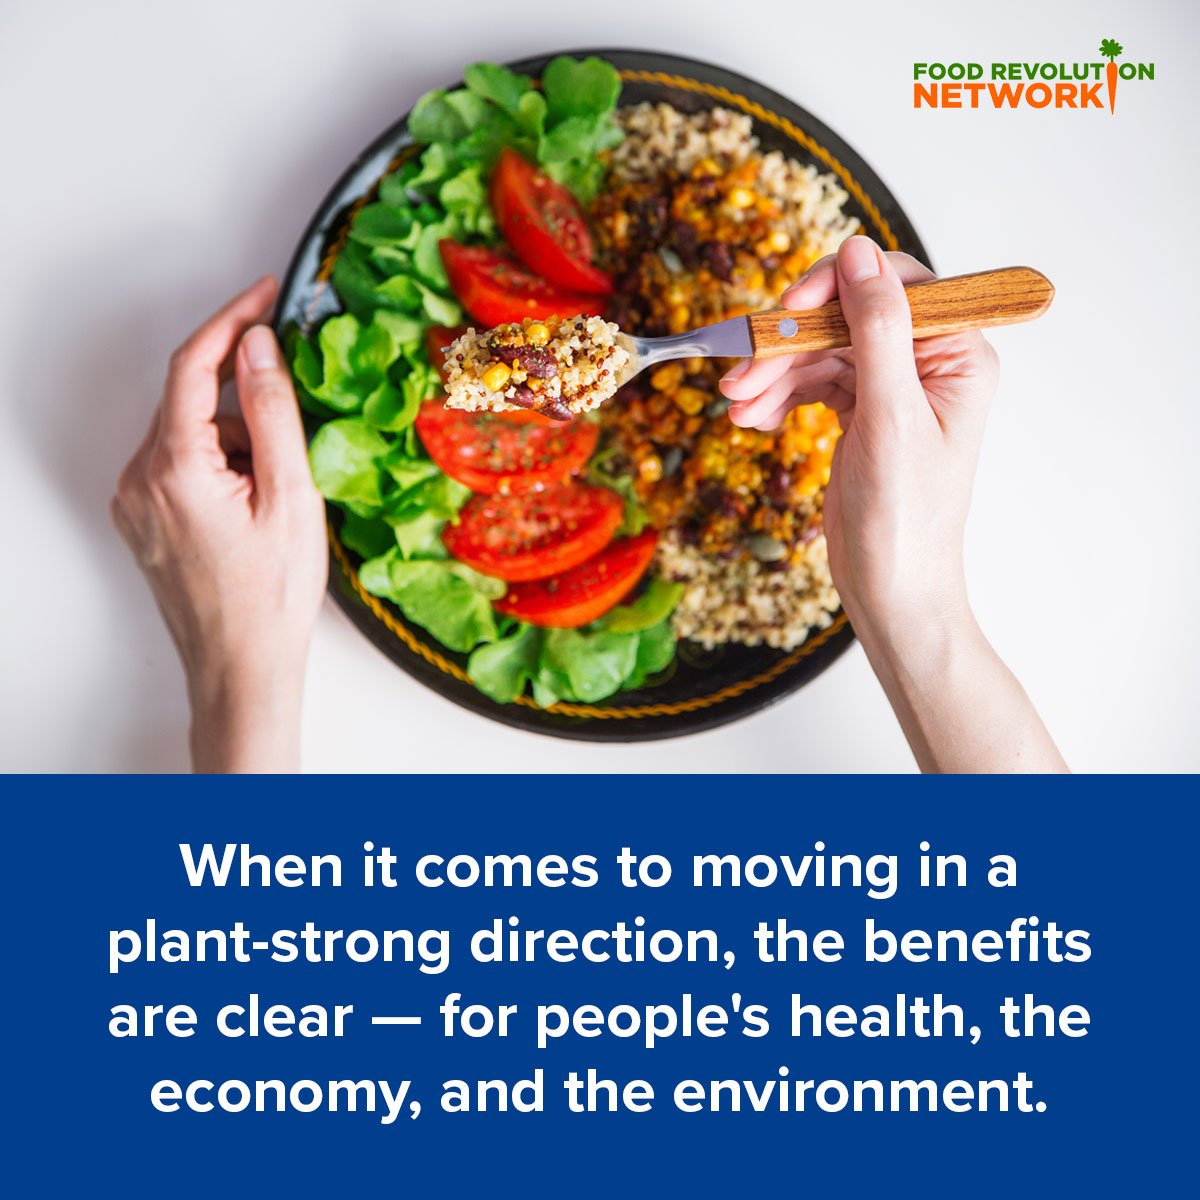 Benefits of reduced meat consumption and moving in a plant-powered direction.